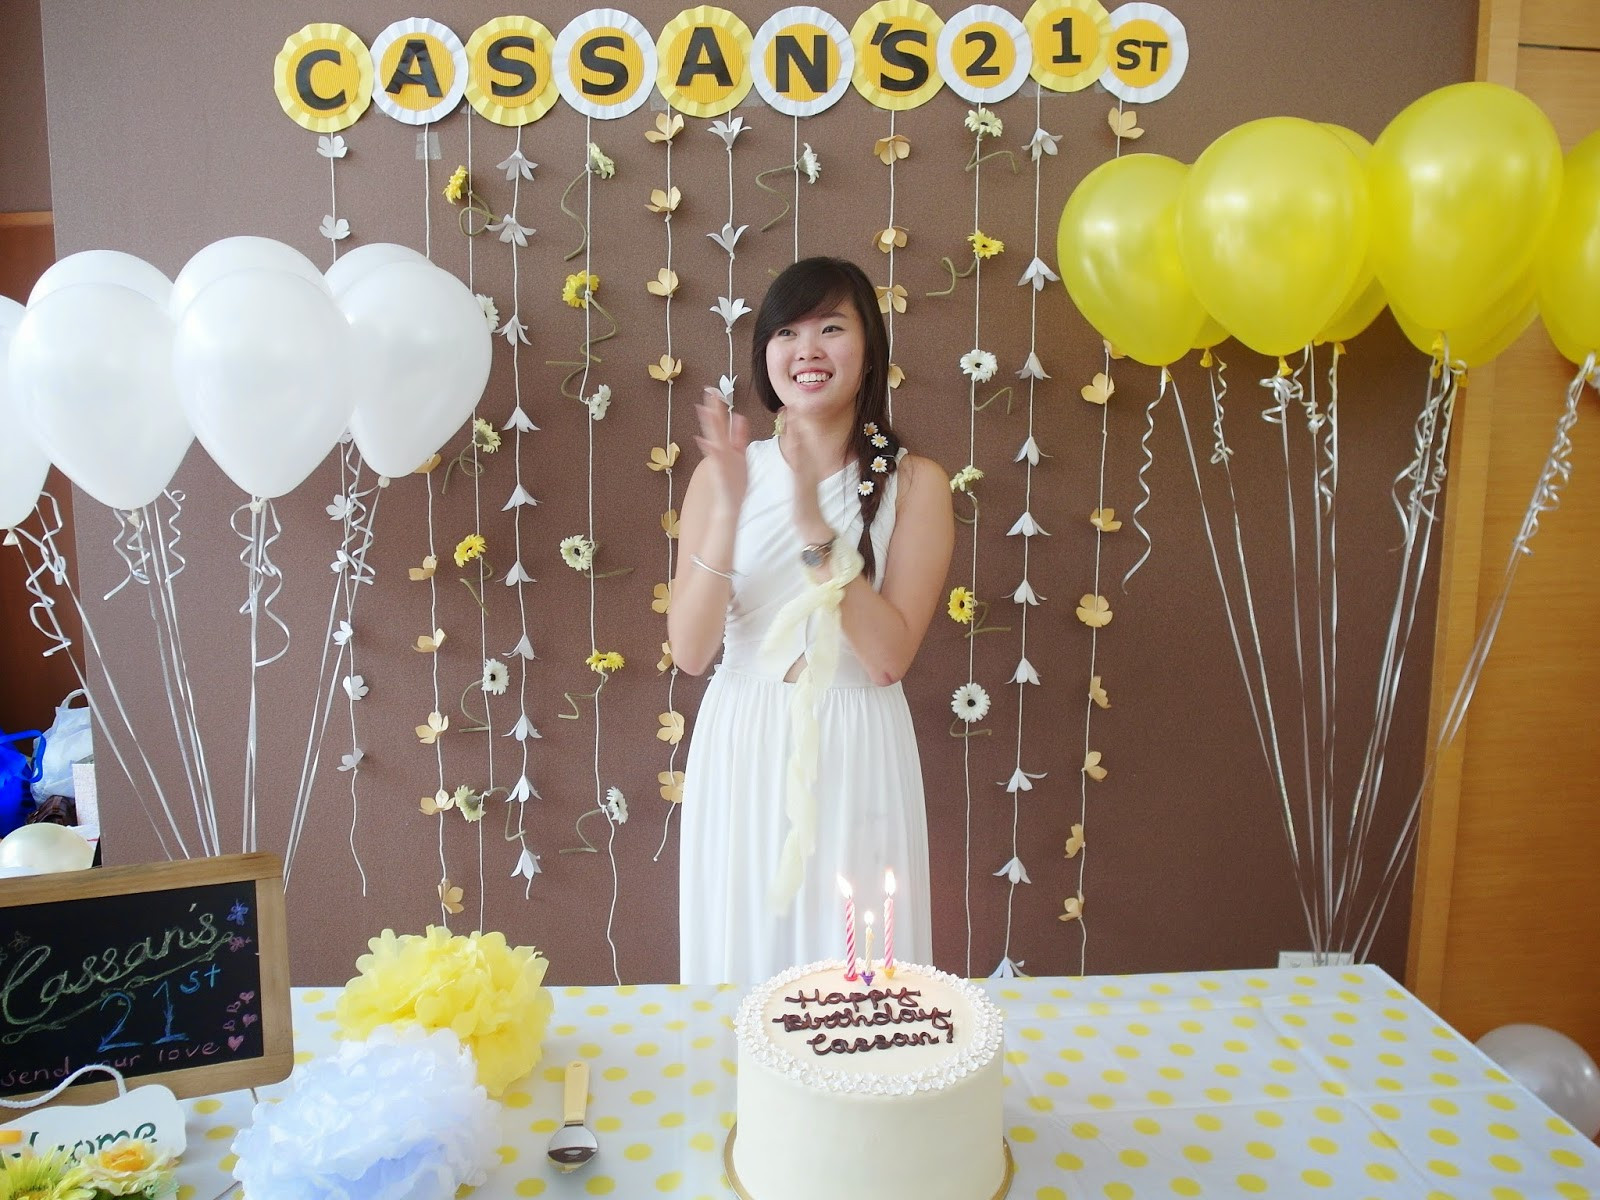 Best ideas about 21st Birthday Decorations . Save or Pin How to Throw a Successful 21st Birthday Party Now.